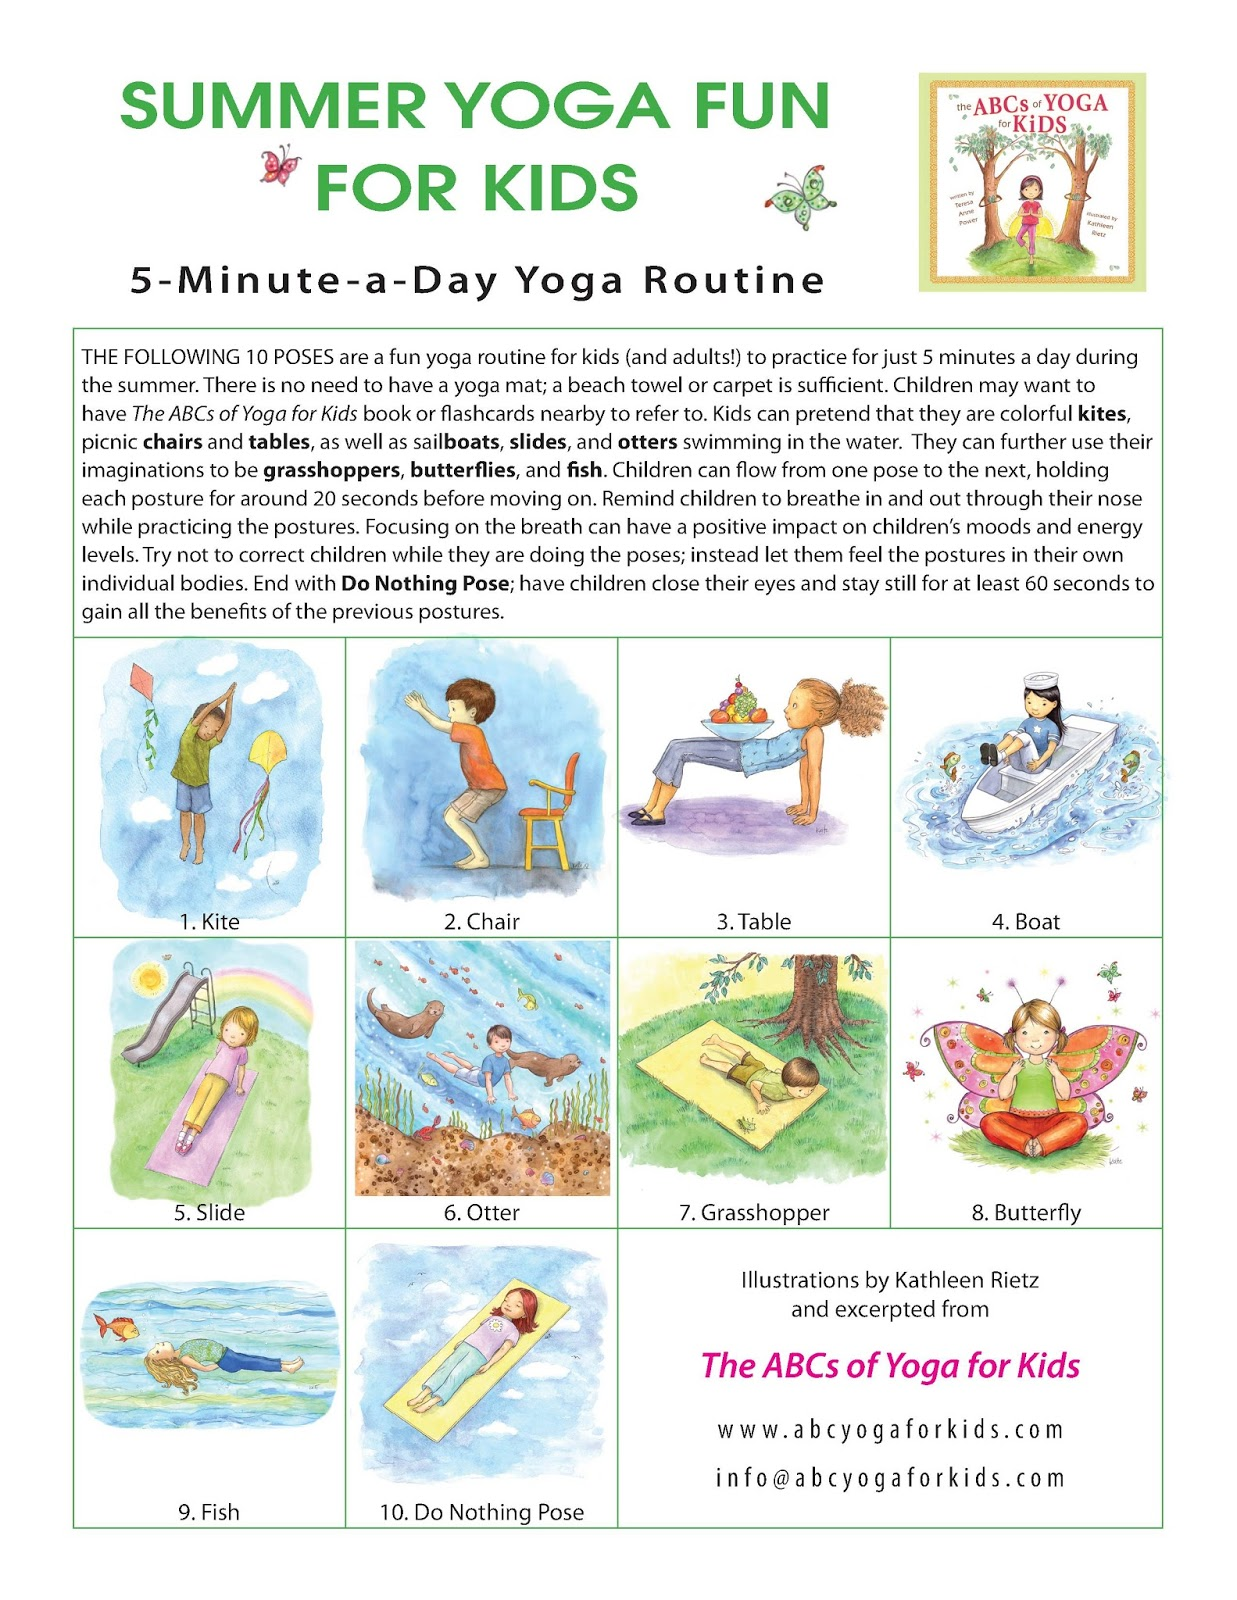 Yoga Worksheets For Kids Printable Worksheets And Activities For Teachers Parents Tutors And Homeschool Families